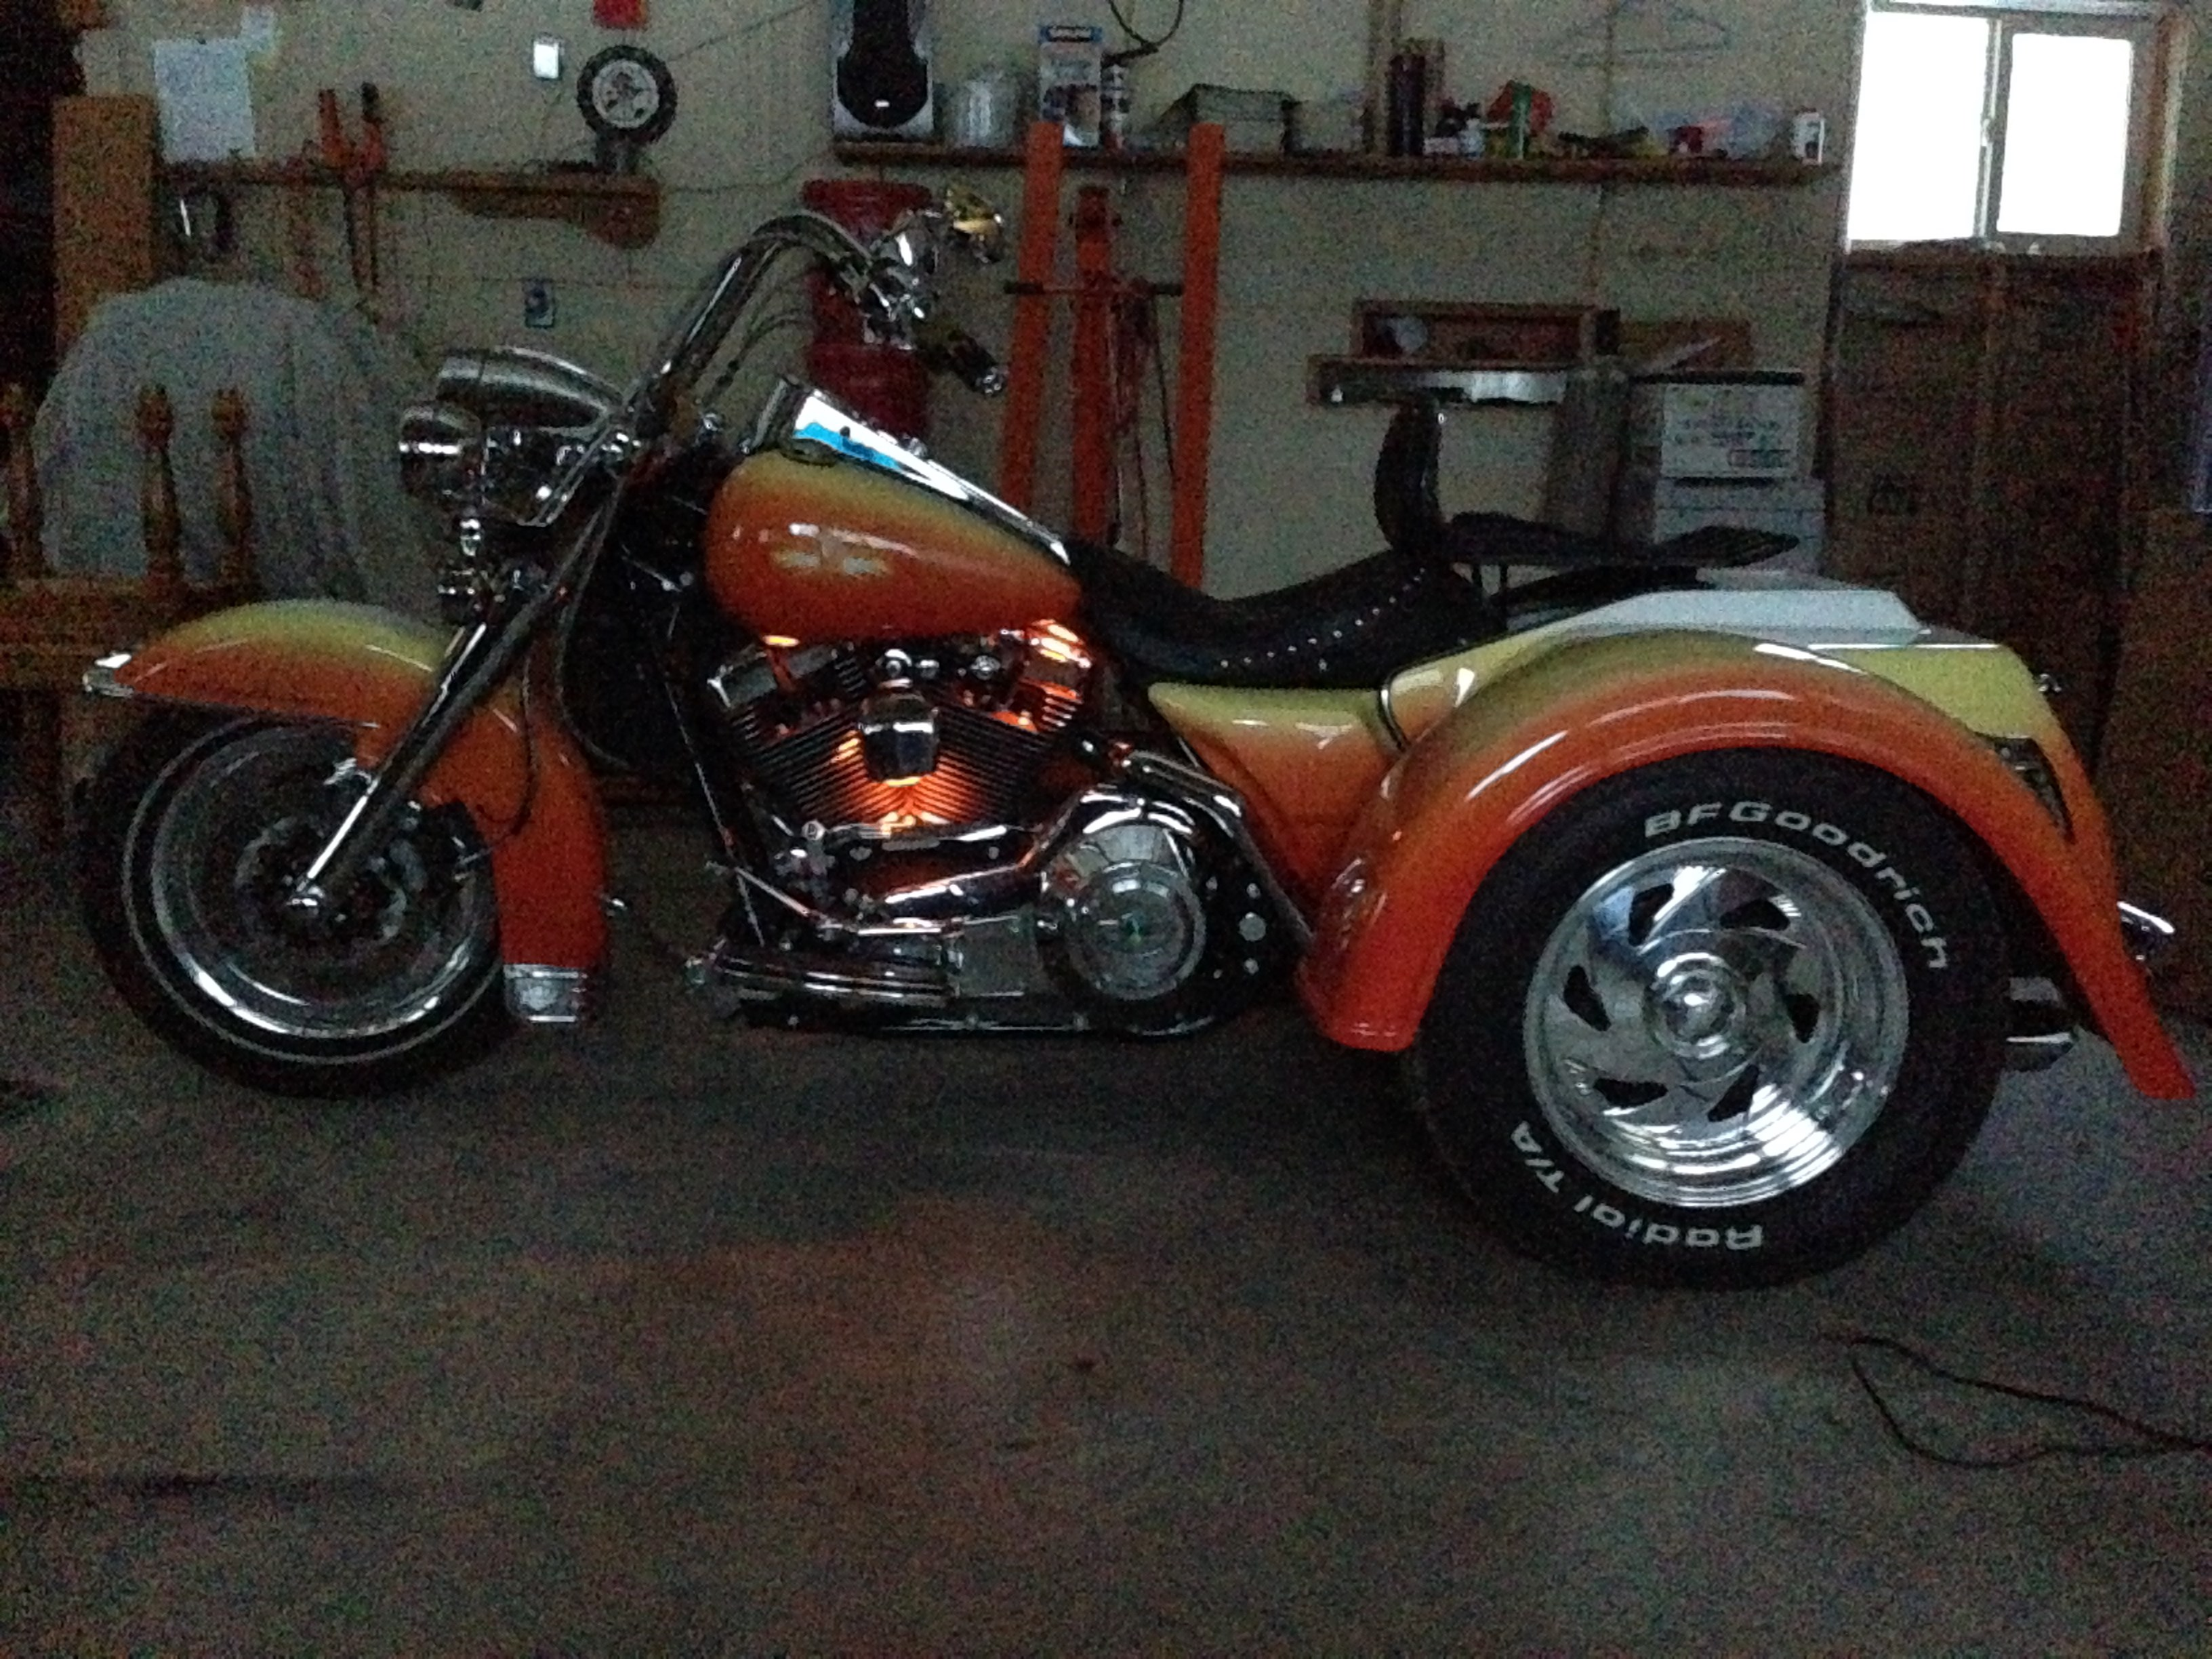 2003 Harley Davidson 174 Custom Trike Yellow Orange White